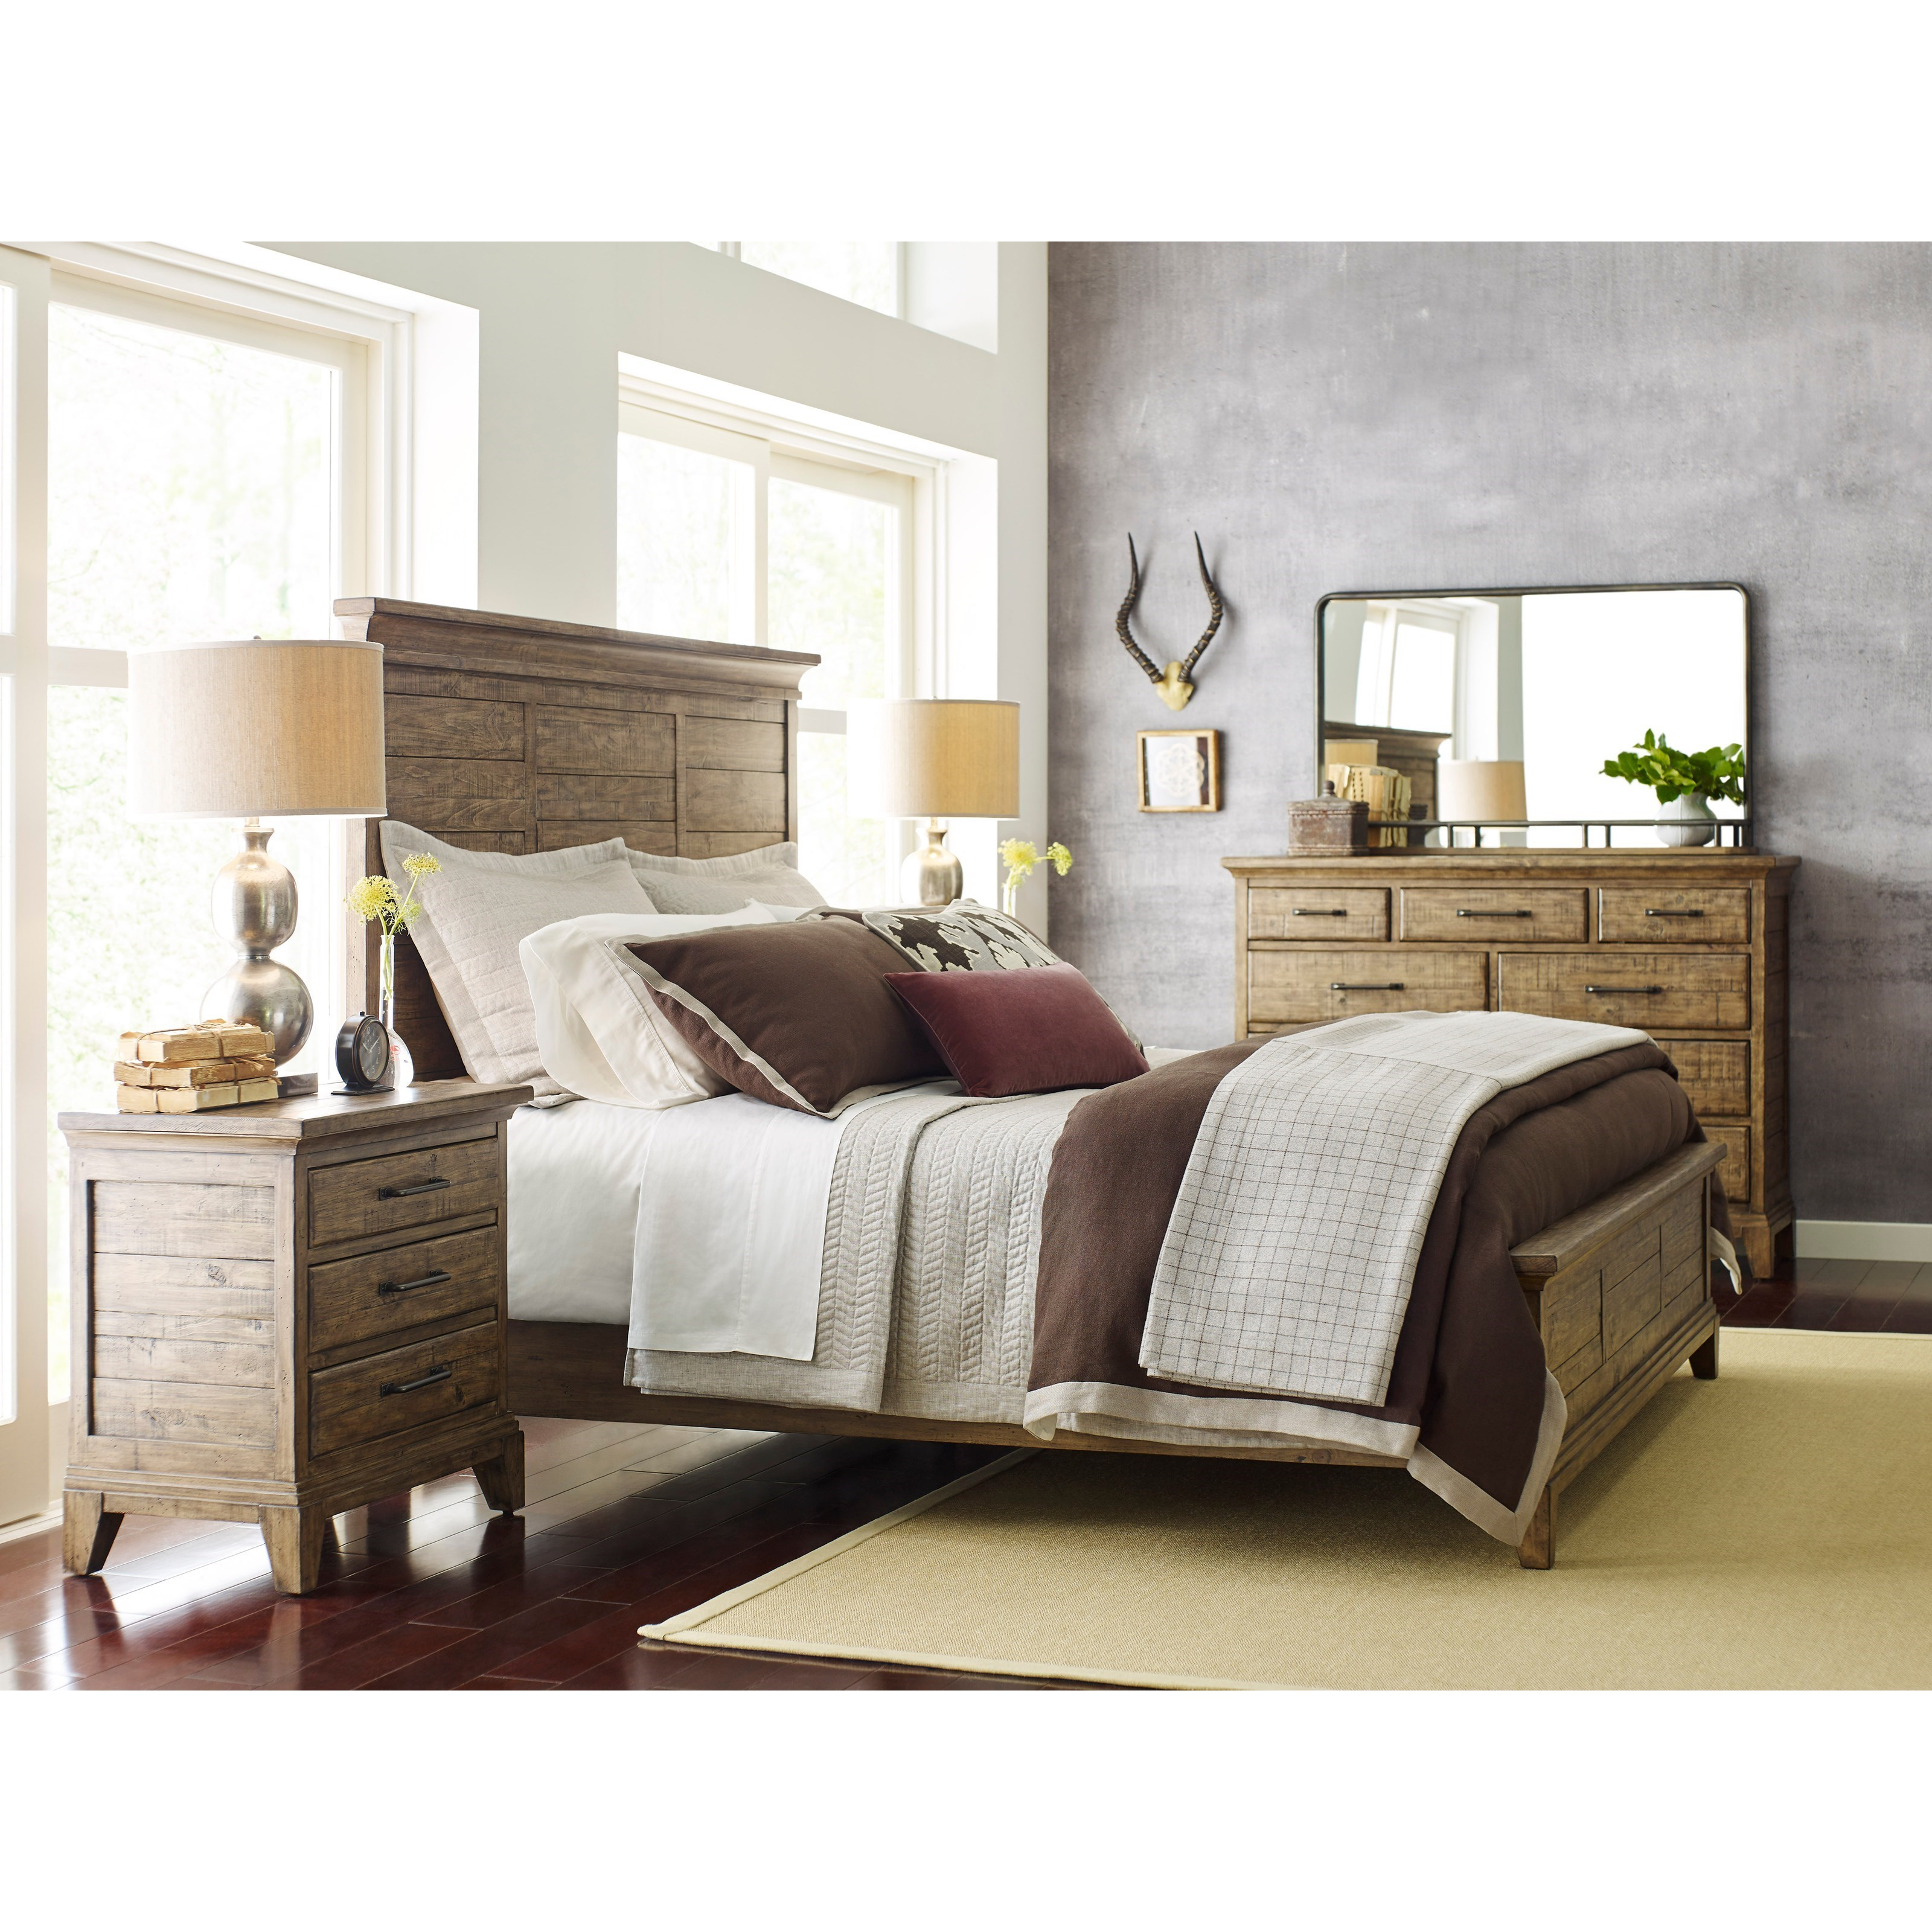 Kincaid furniture plank road queen bedroom group hudson for Kincaid american journal bedroom furniture